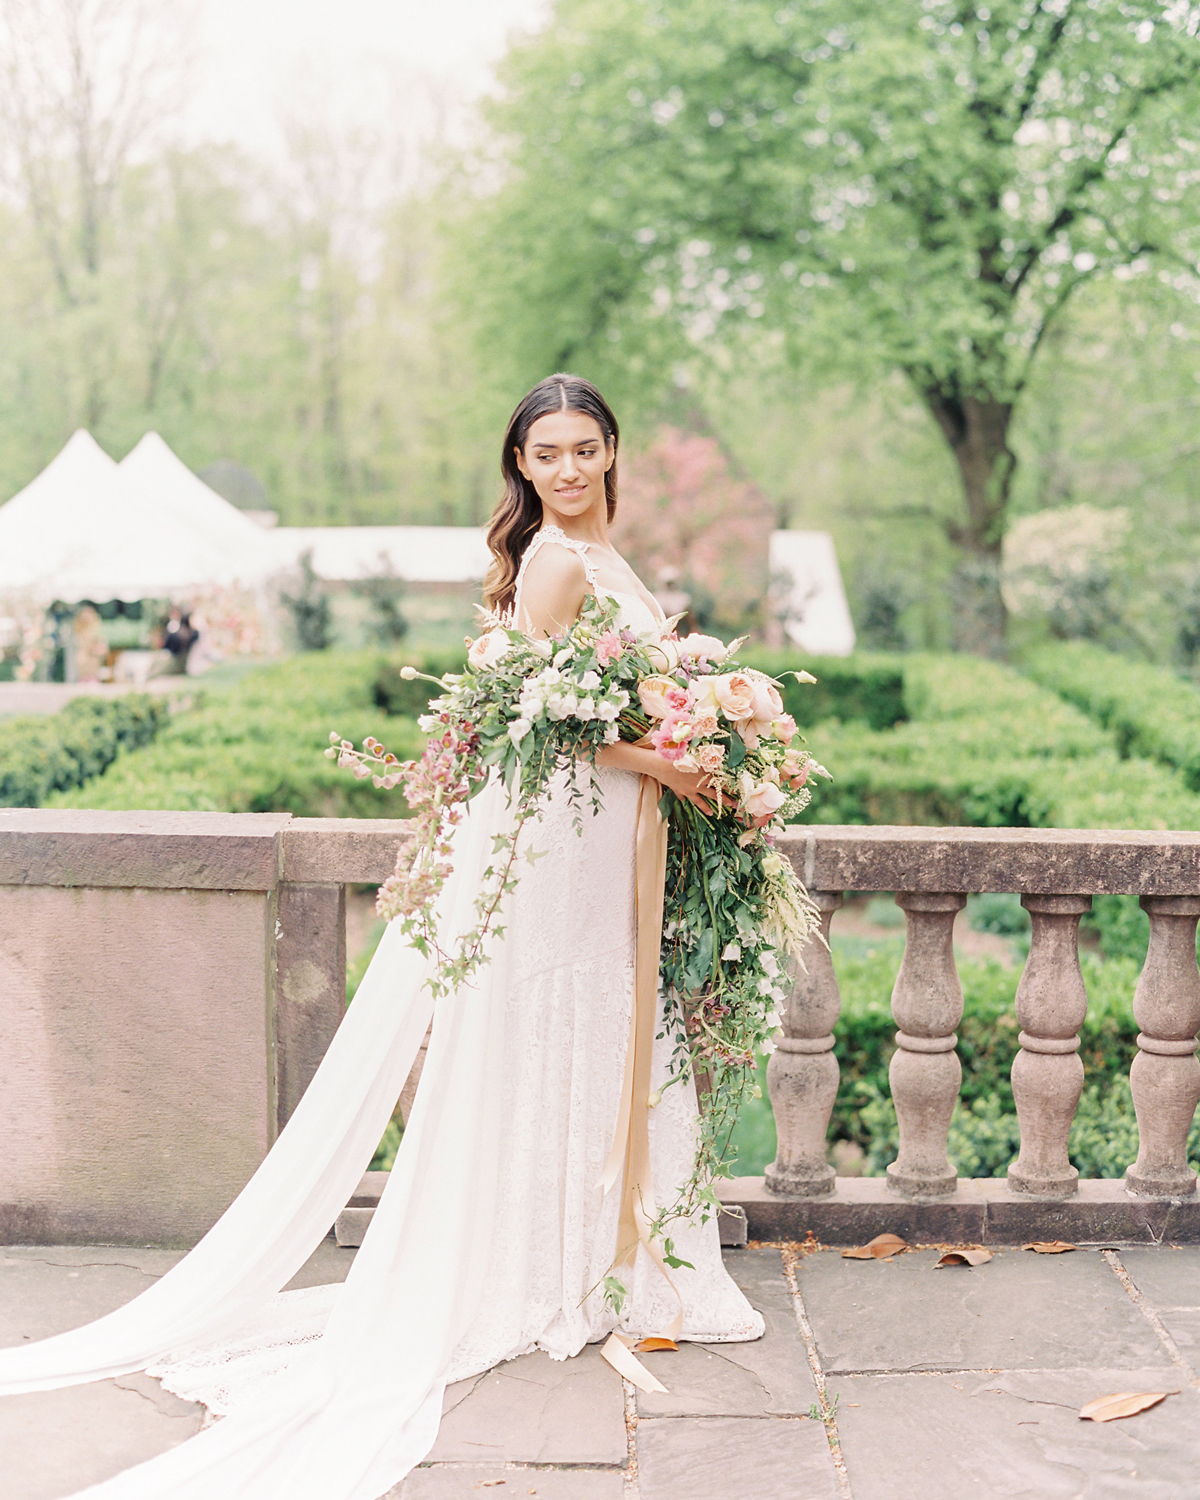 Trending Now: Long-Stemmed Wedding Bouquets